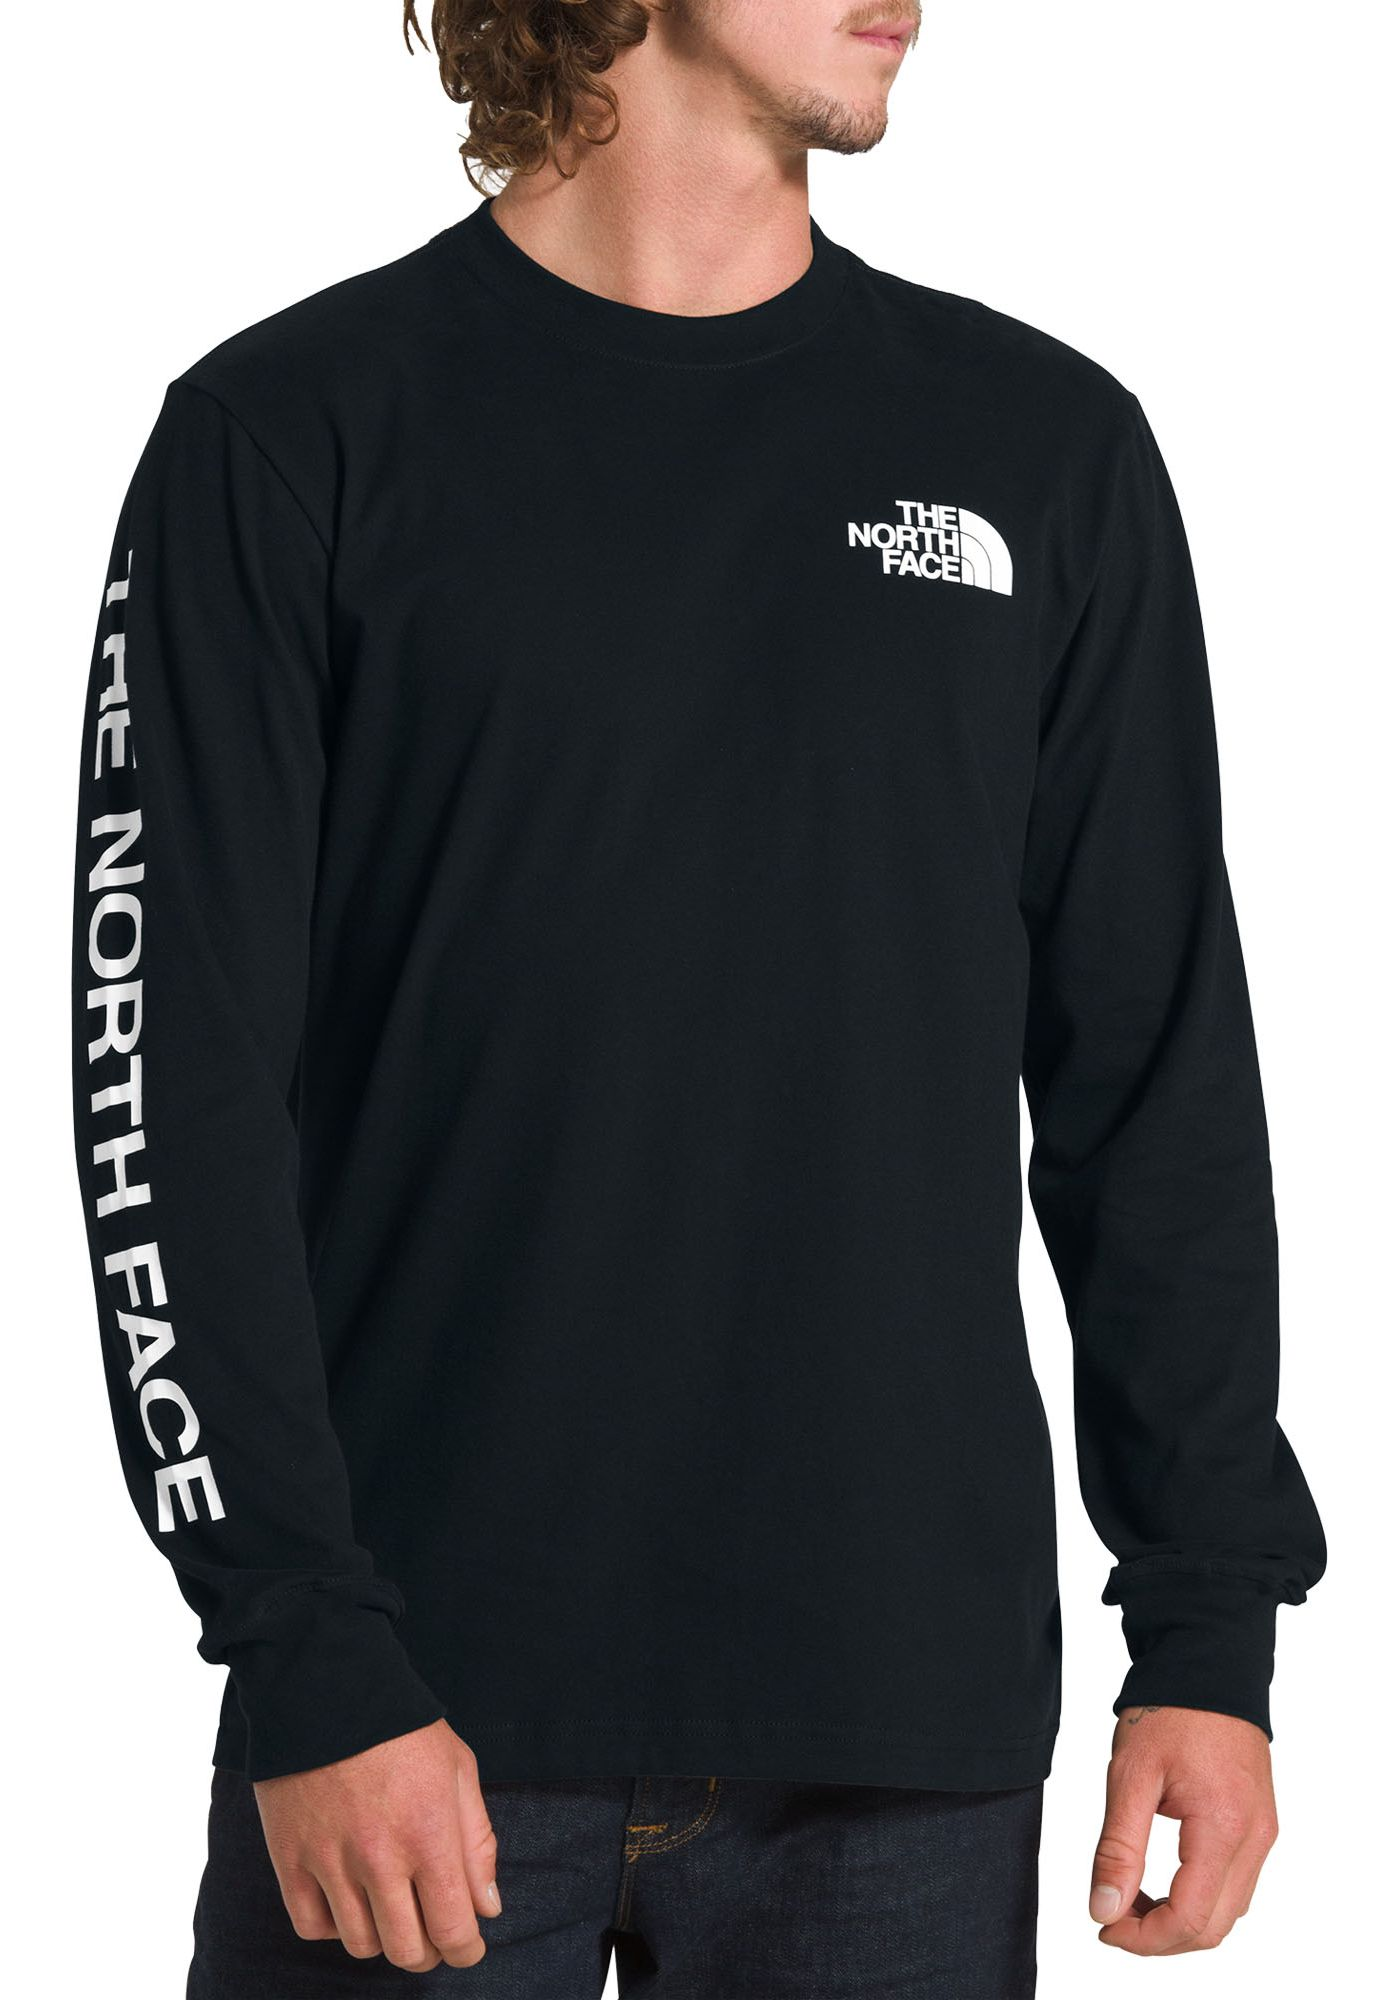 The North Face Men's Long Sleeve Brand Proud Cotton T-Shirt